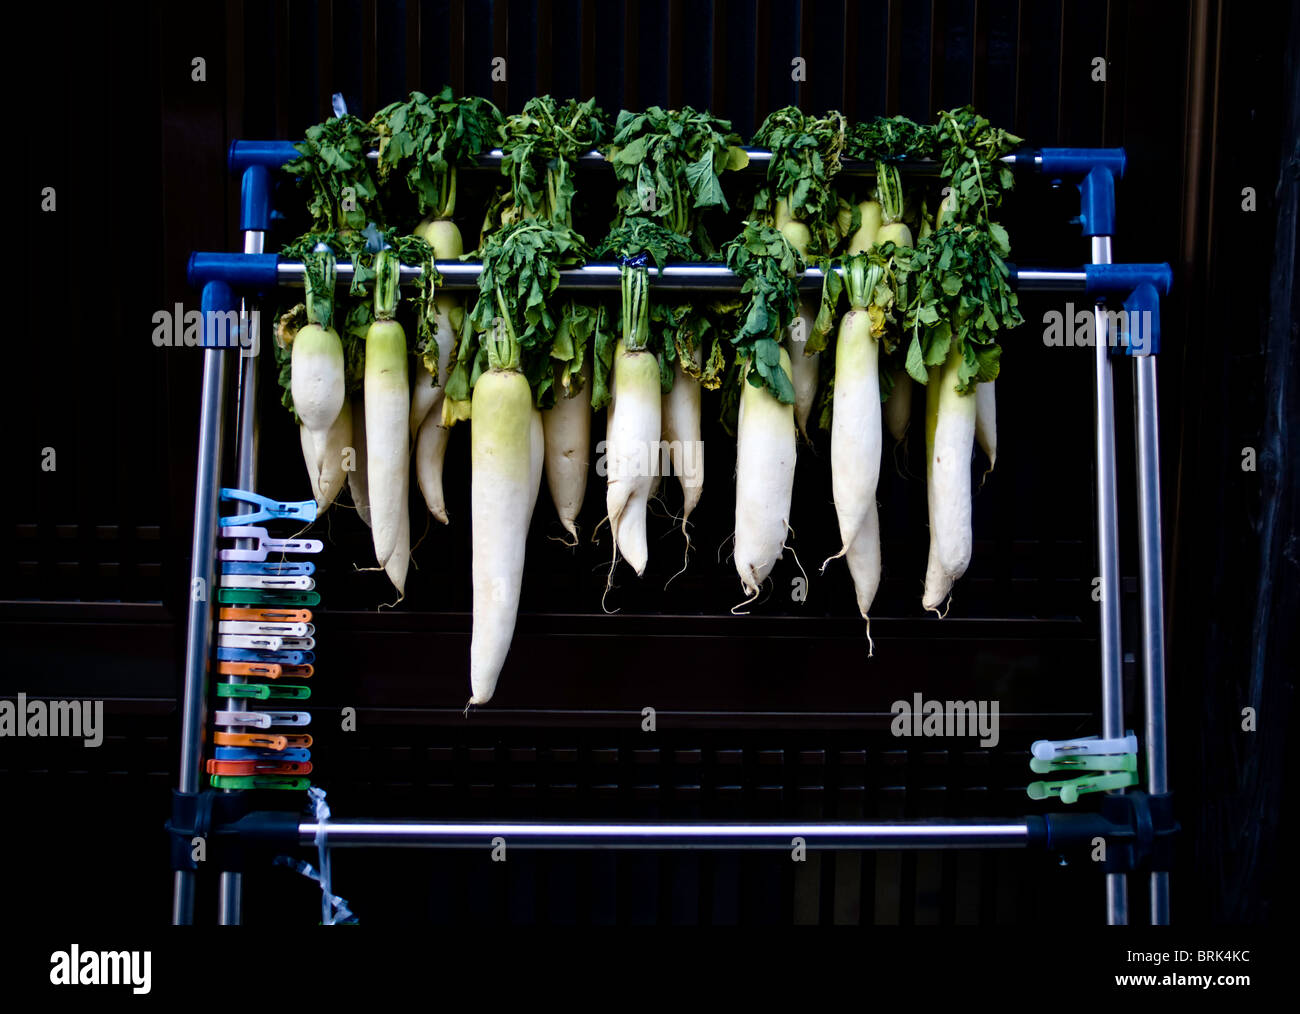 A rack of Japanese daikon hanging out to dry - Stock Image